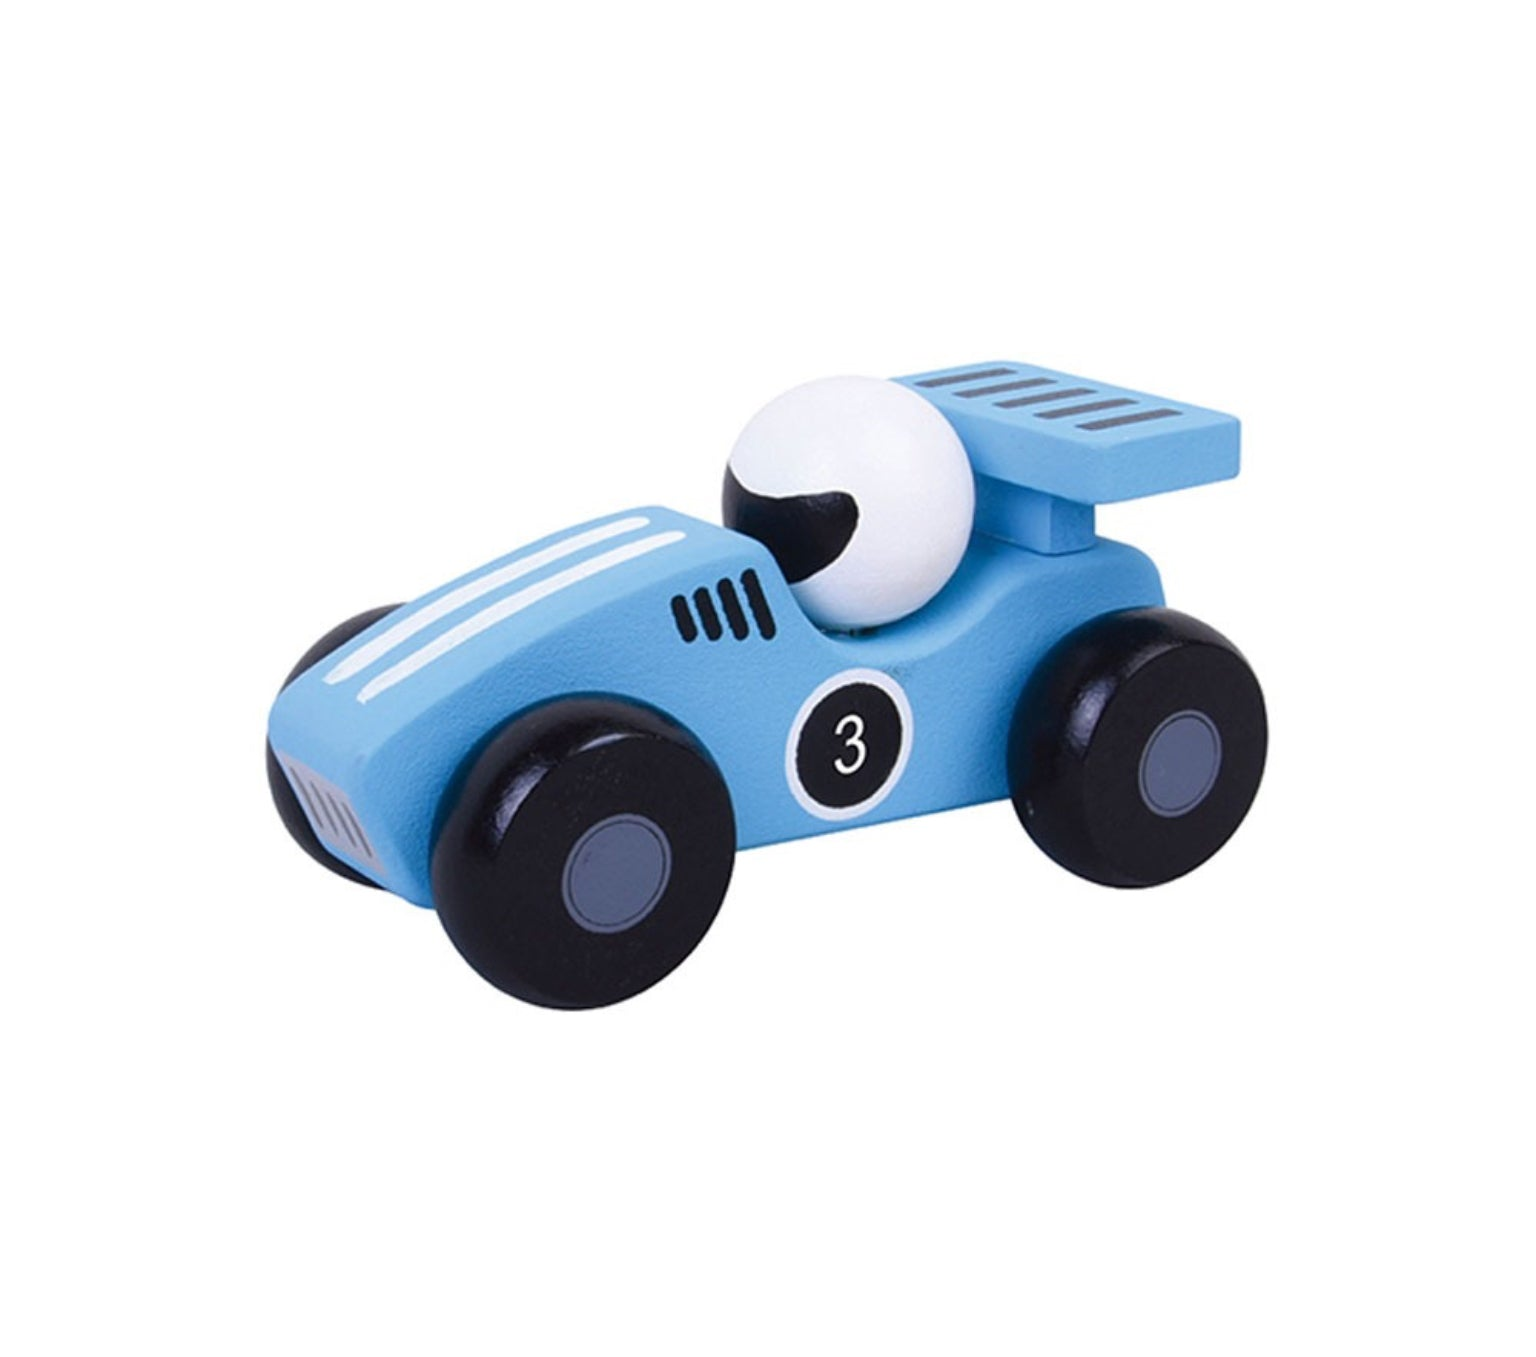 Copy of Jumini Wooden Blue Racing Car Toy